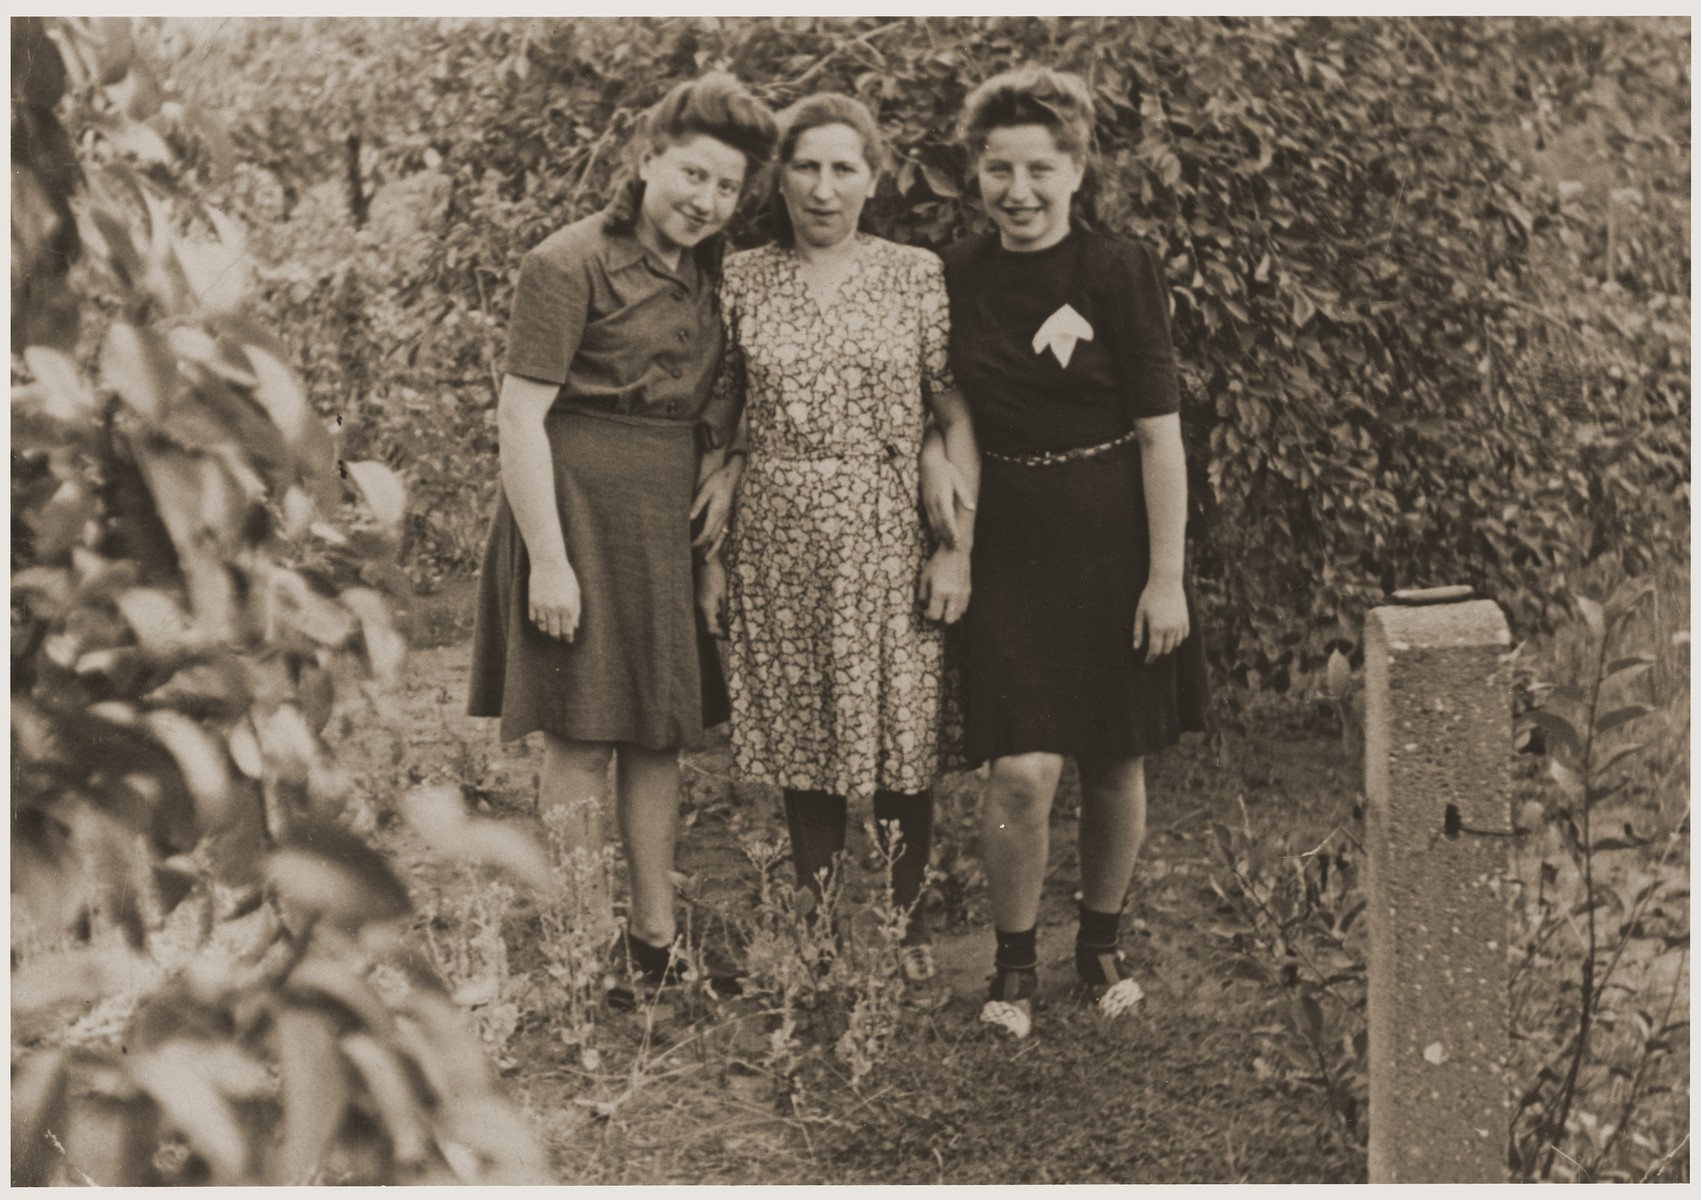 A Jewish mother poses with her two daughters at the Fuerth displaced persons camp.  Pictured are Cyla Goldman with her daughters, Hania (right) and Rachela (left).